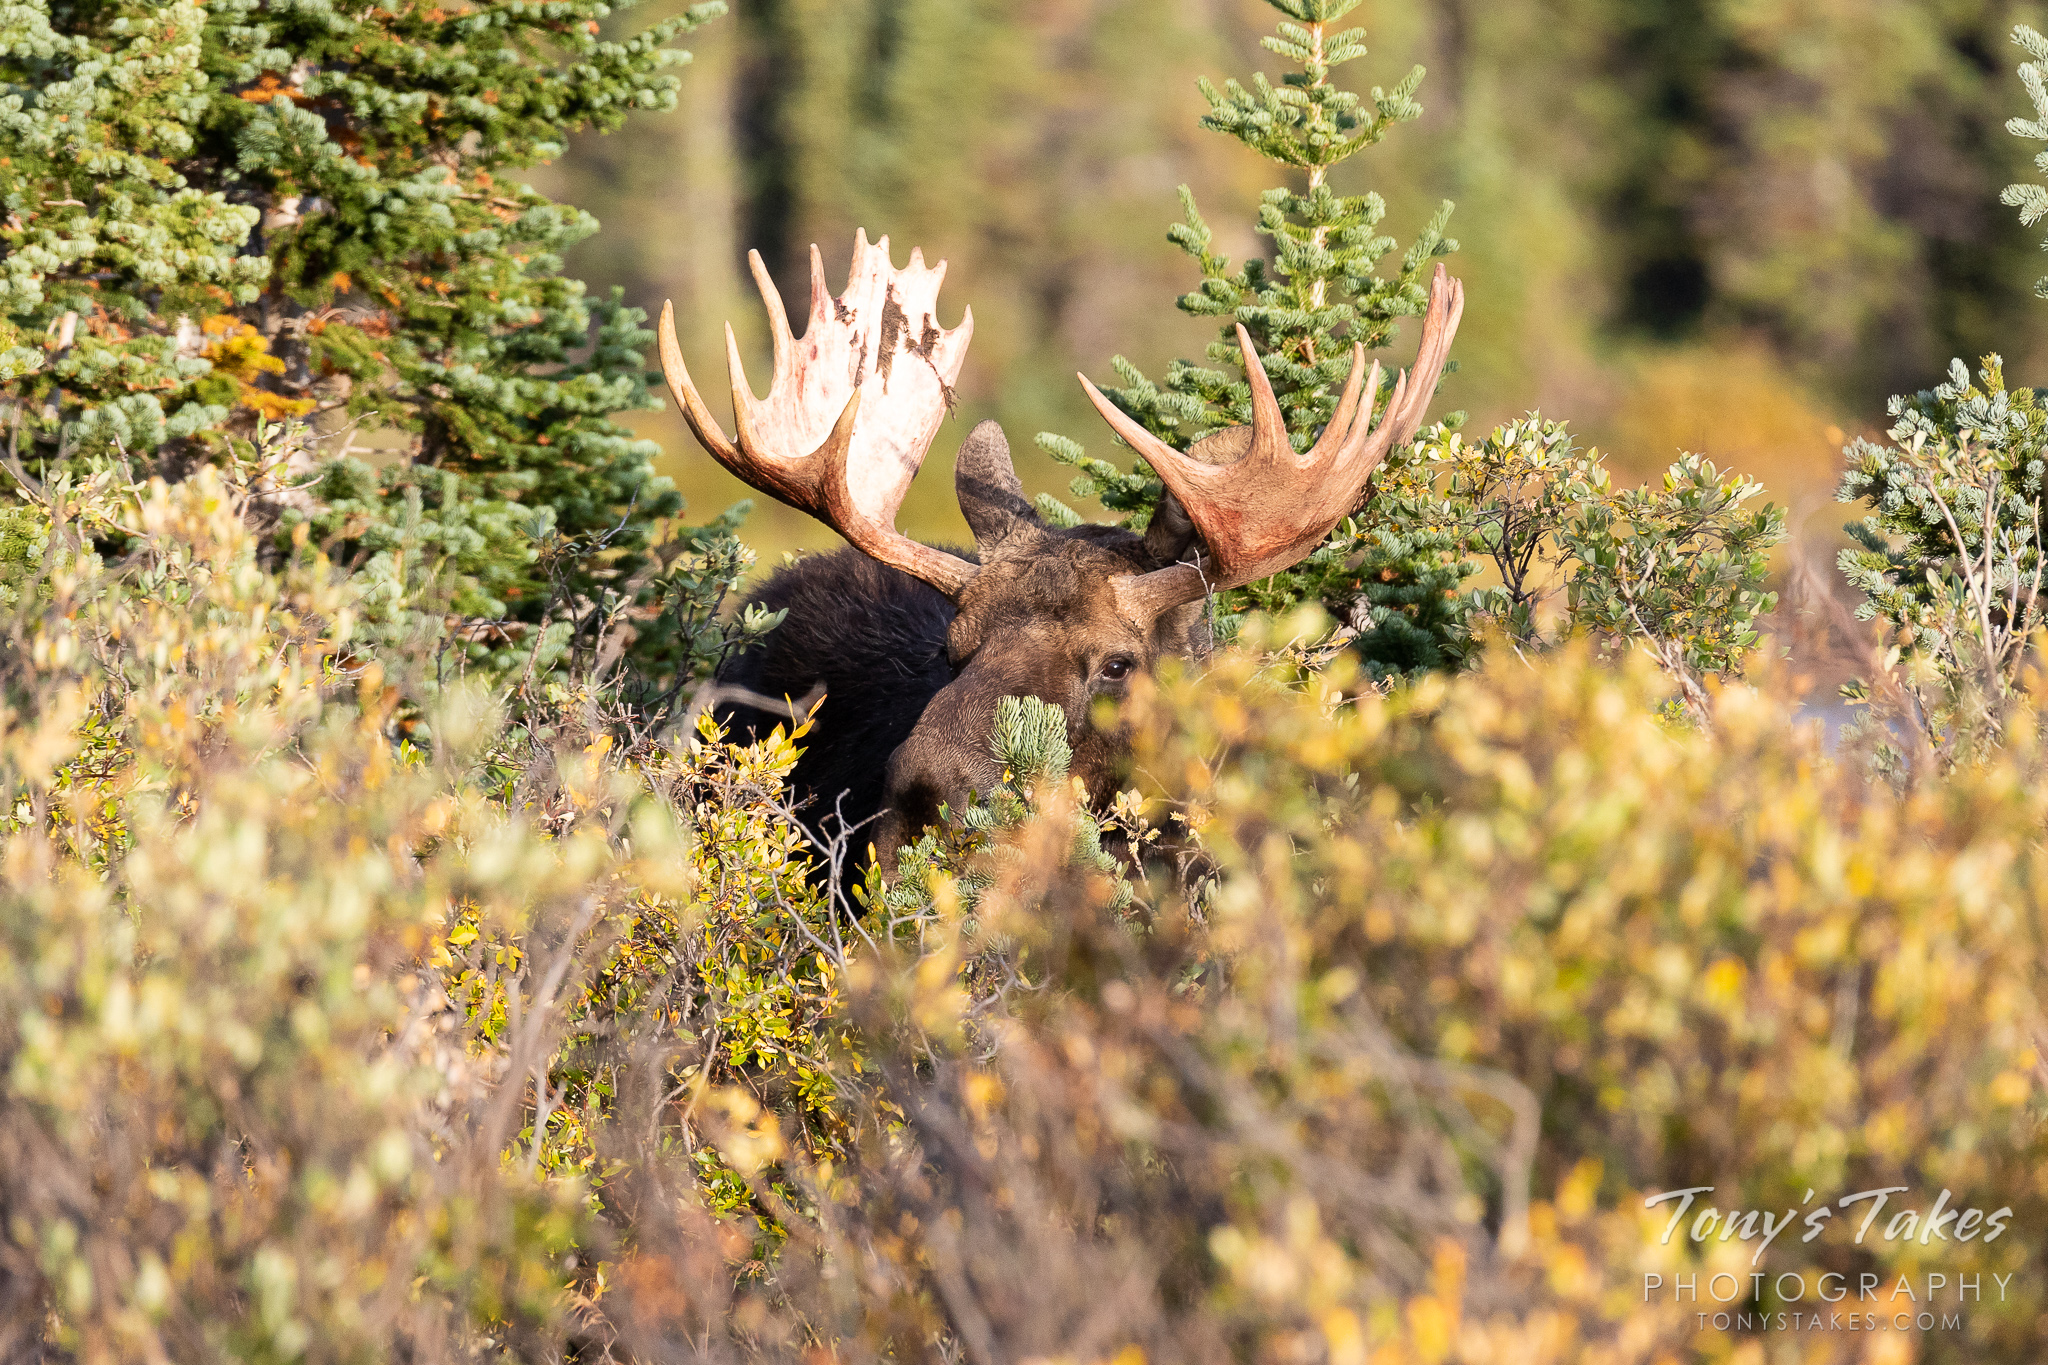 Hide and seek with the biggest animal in the forest